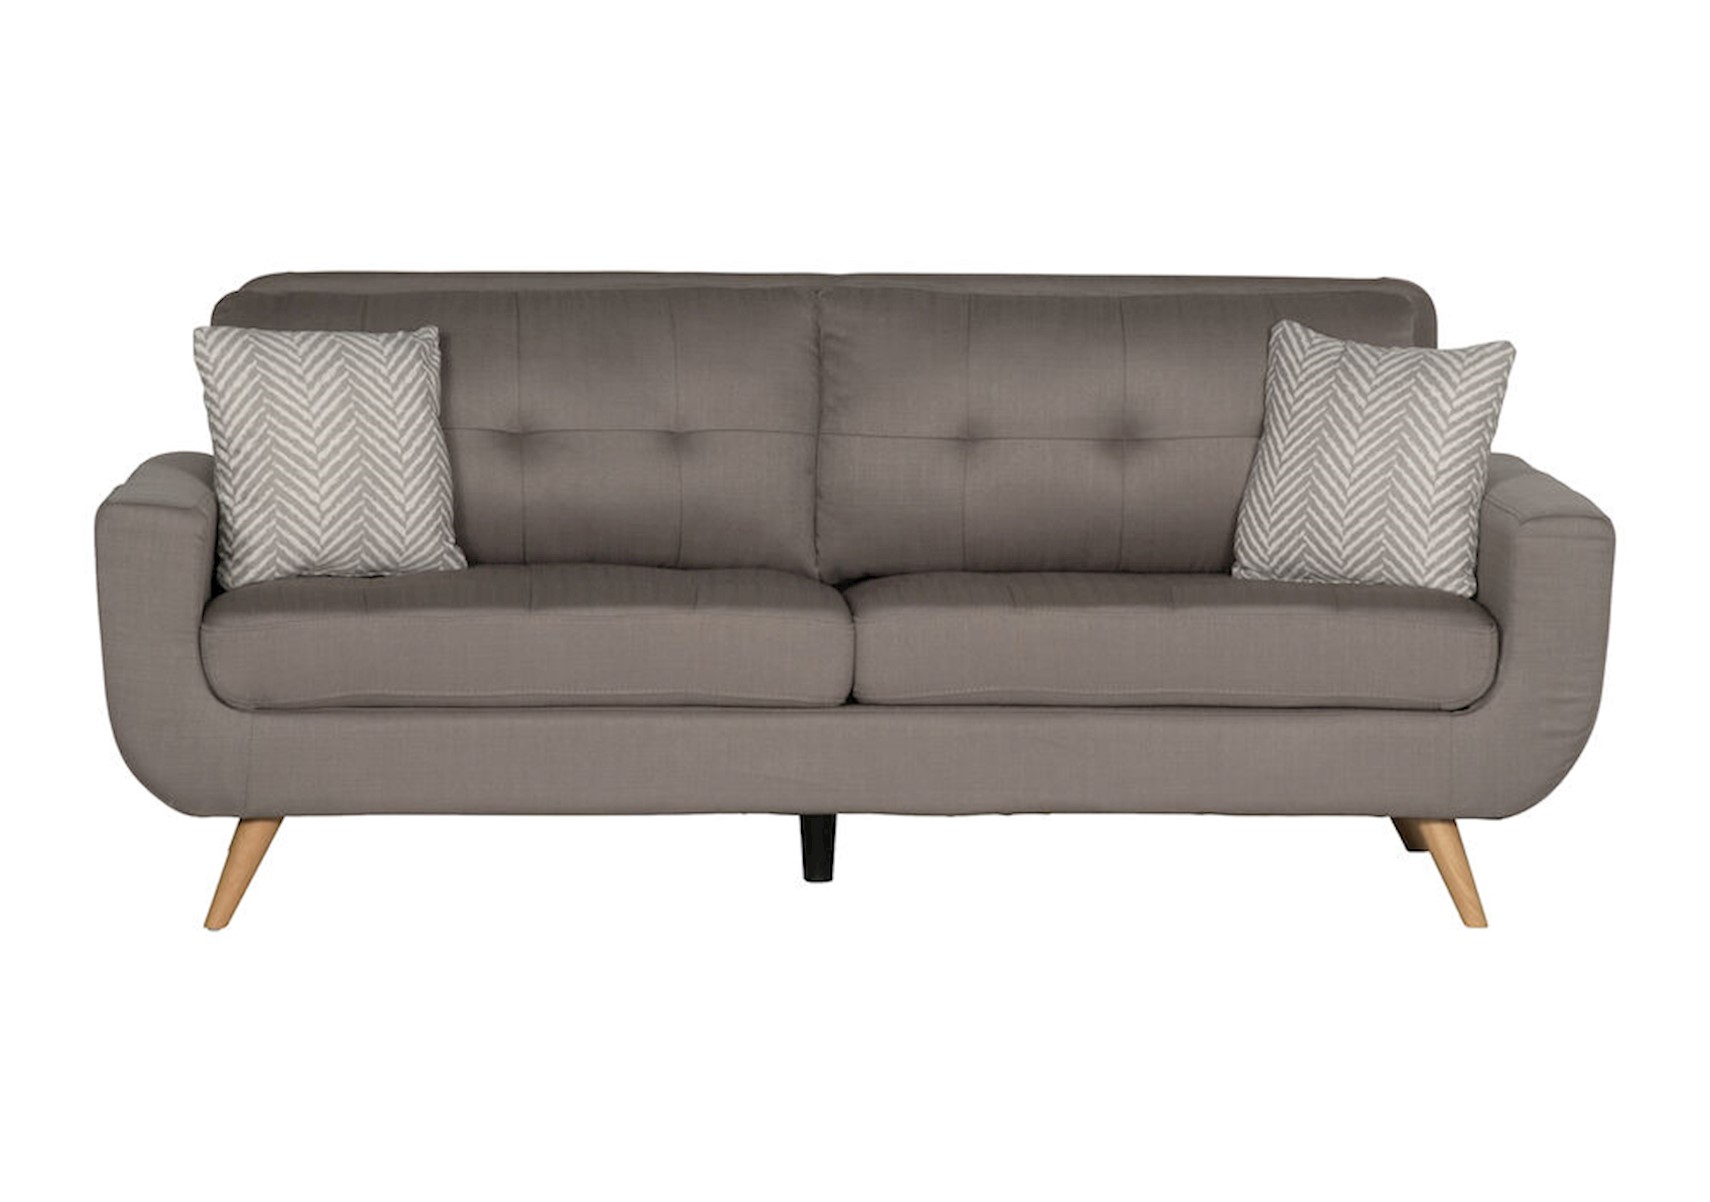 Lacks Darrin Gray Sofa